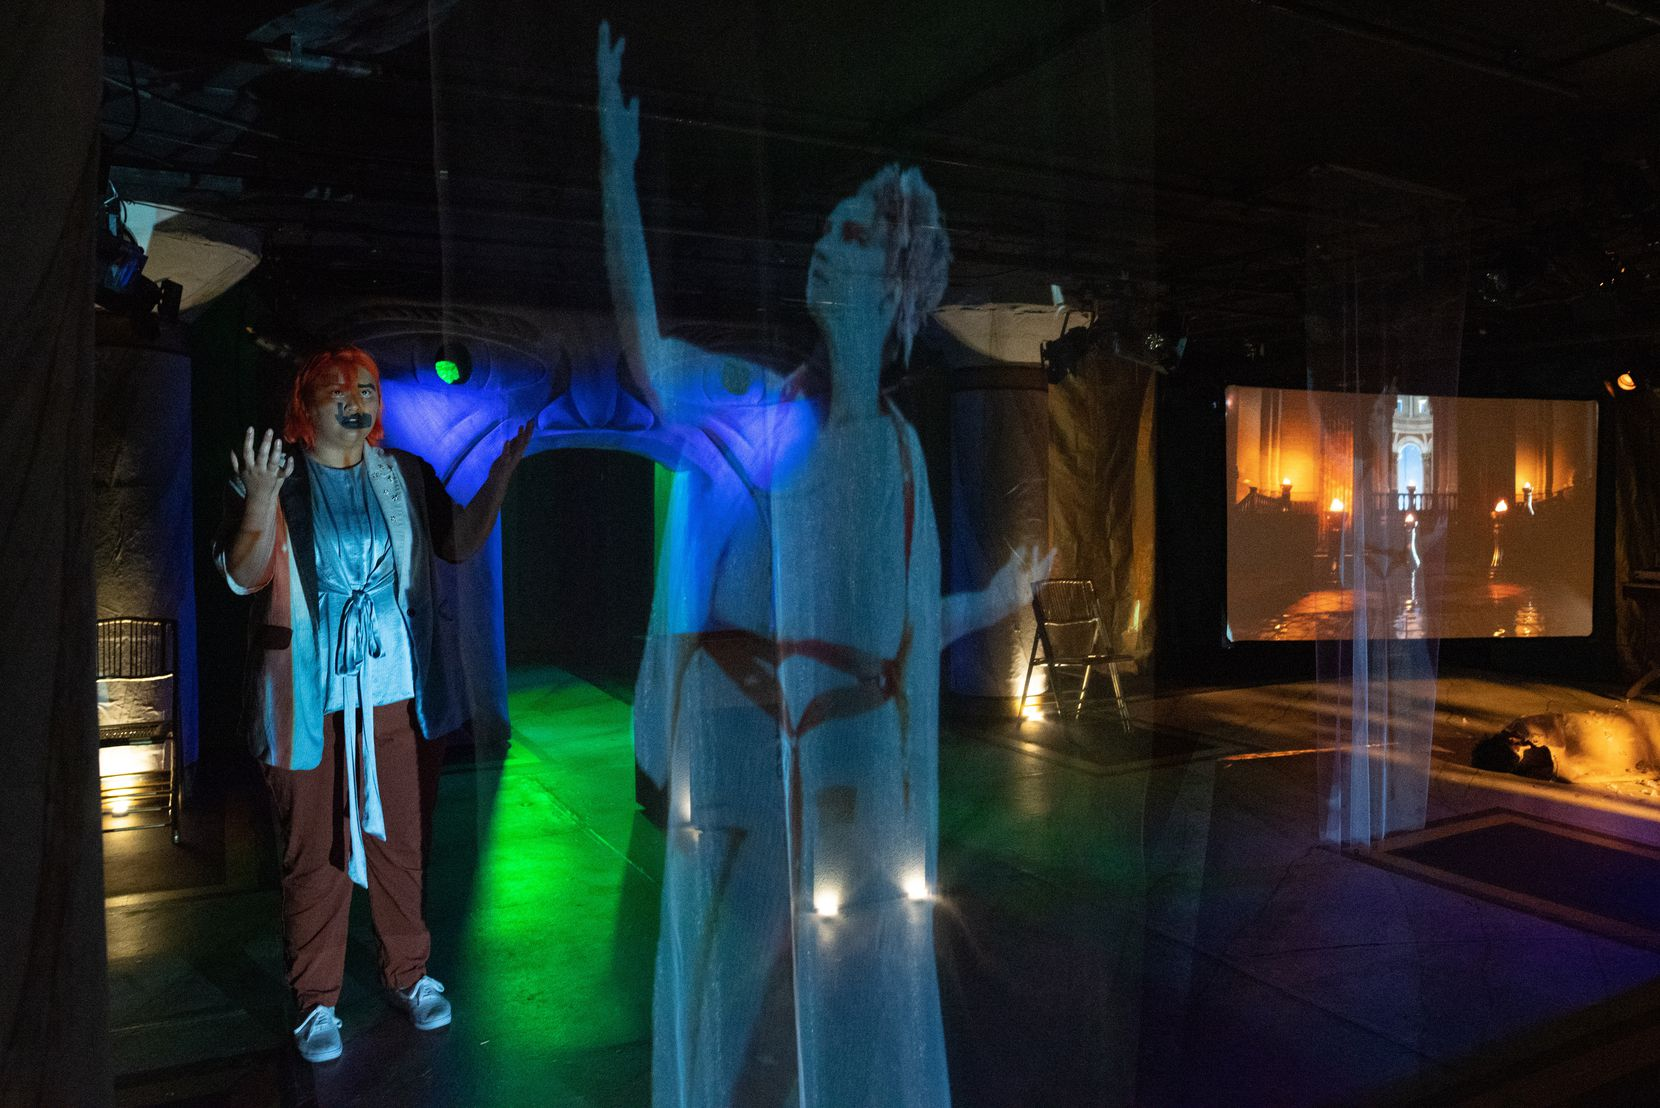 """Mindamora Rocha (left) as Ismene and a projected Anastasia Muñoz as Iereia in """"Stronger Than Arms,"""" a new play produced by the Danielle Georgiou Dance Group and presented by Undermain Theatre in its Deep Ellum basement space."""